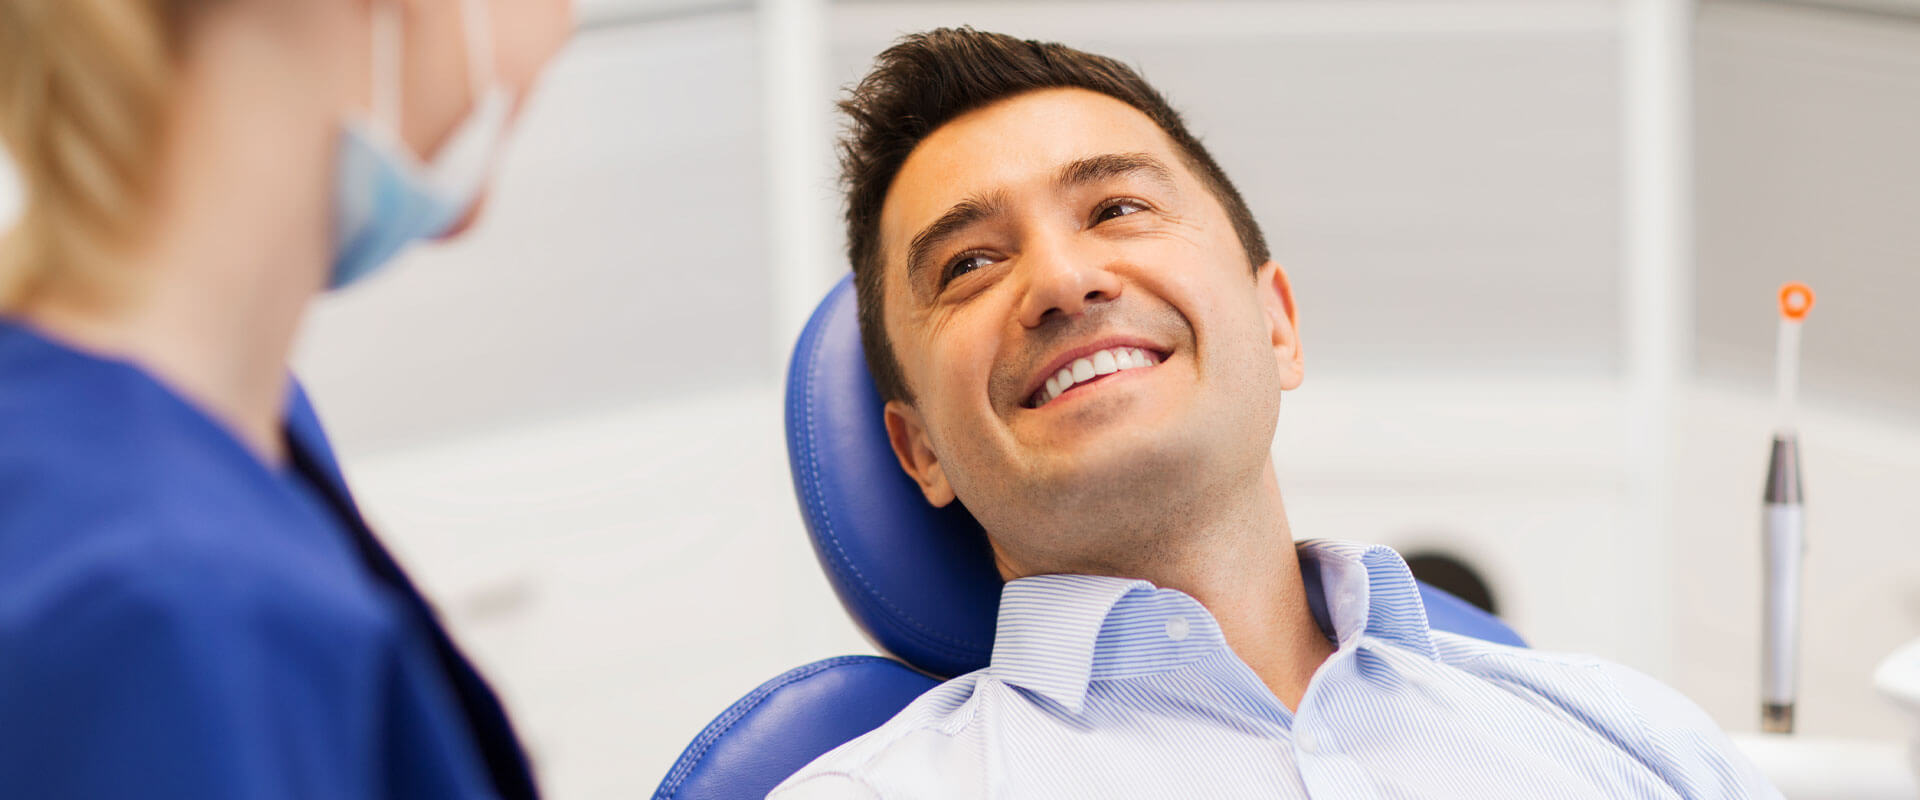 Male patient smiling about to receive root canal treatment